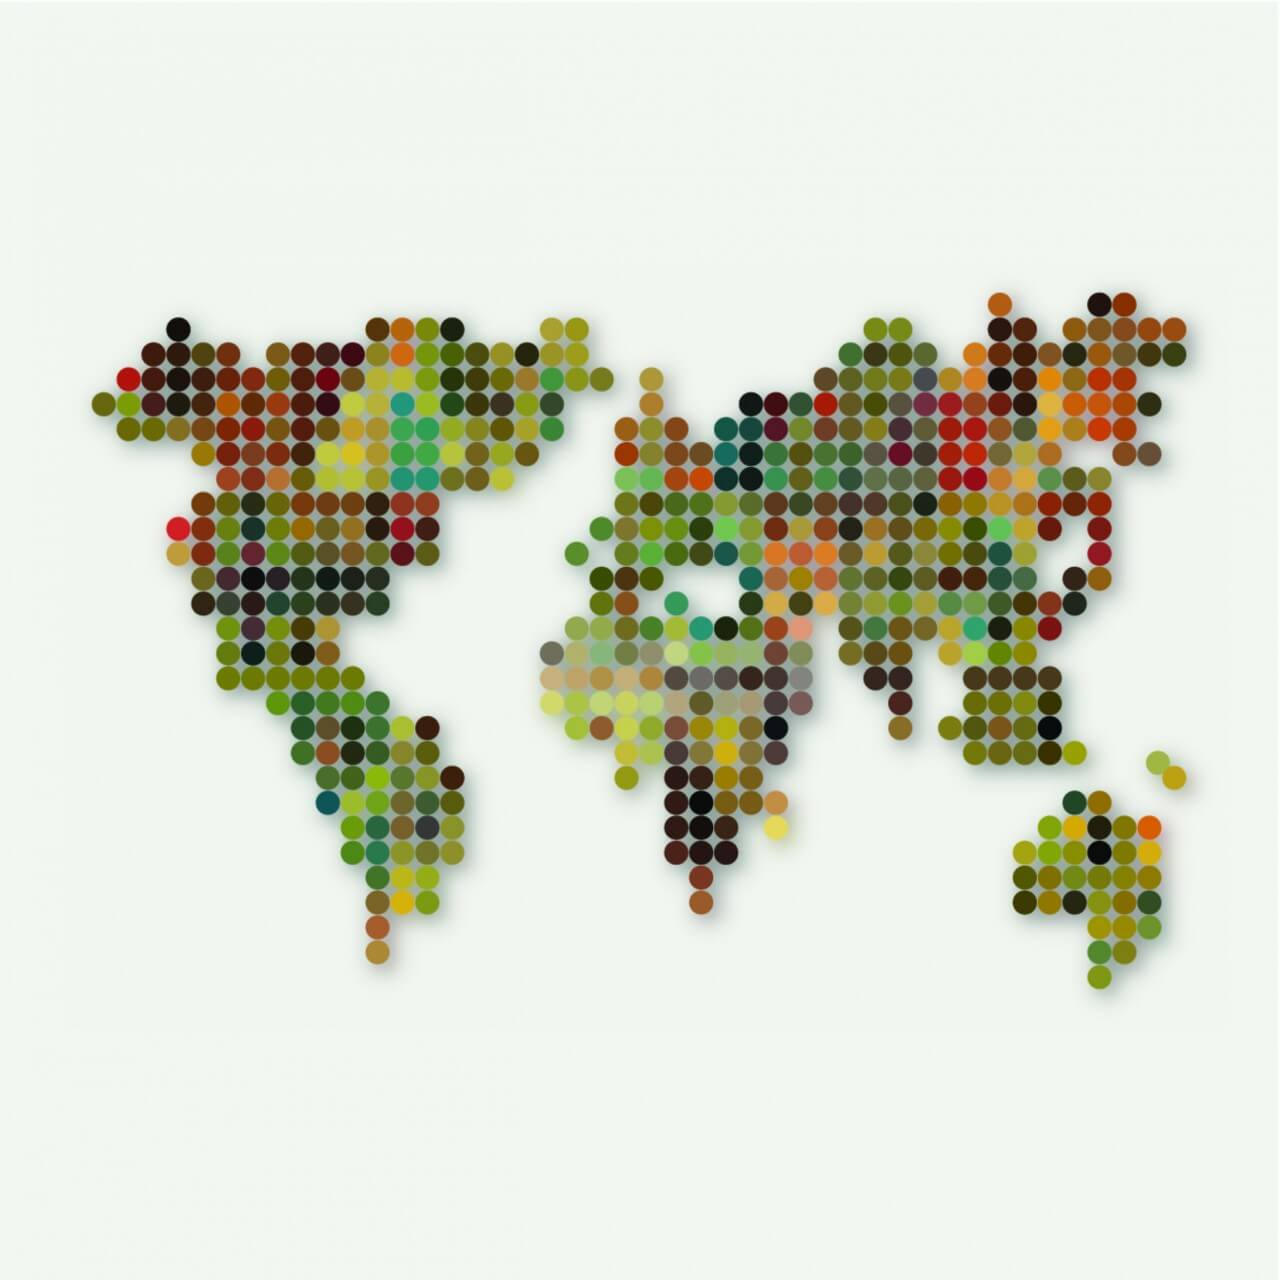 """Free vector """"Abstract colorful dot style world map pattern background"""""""